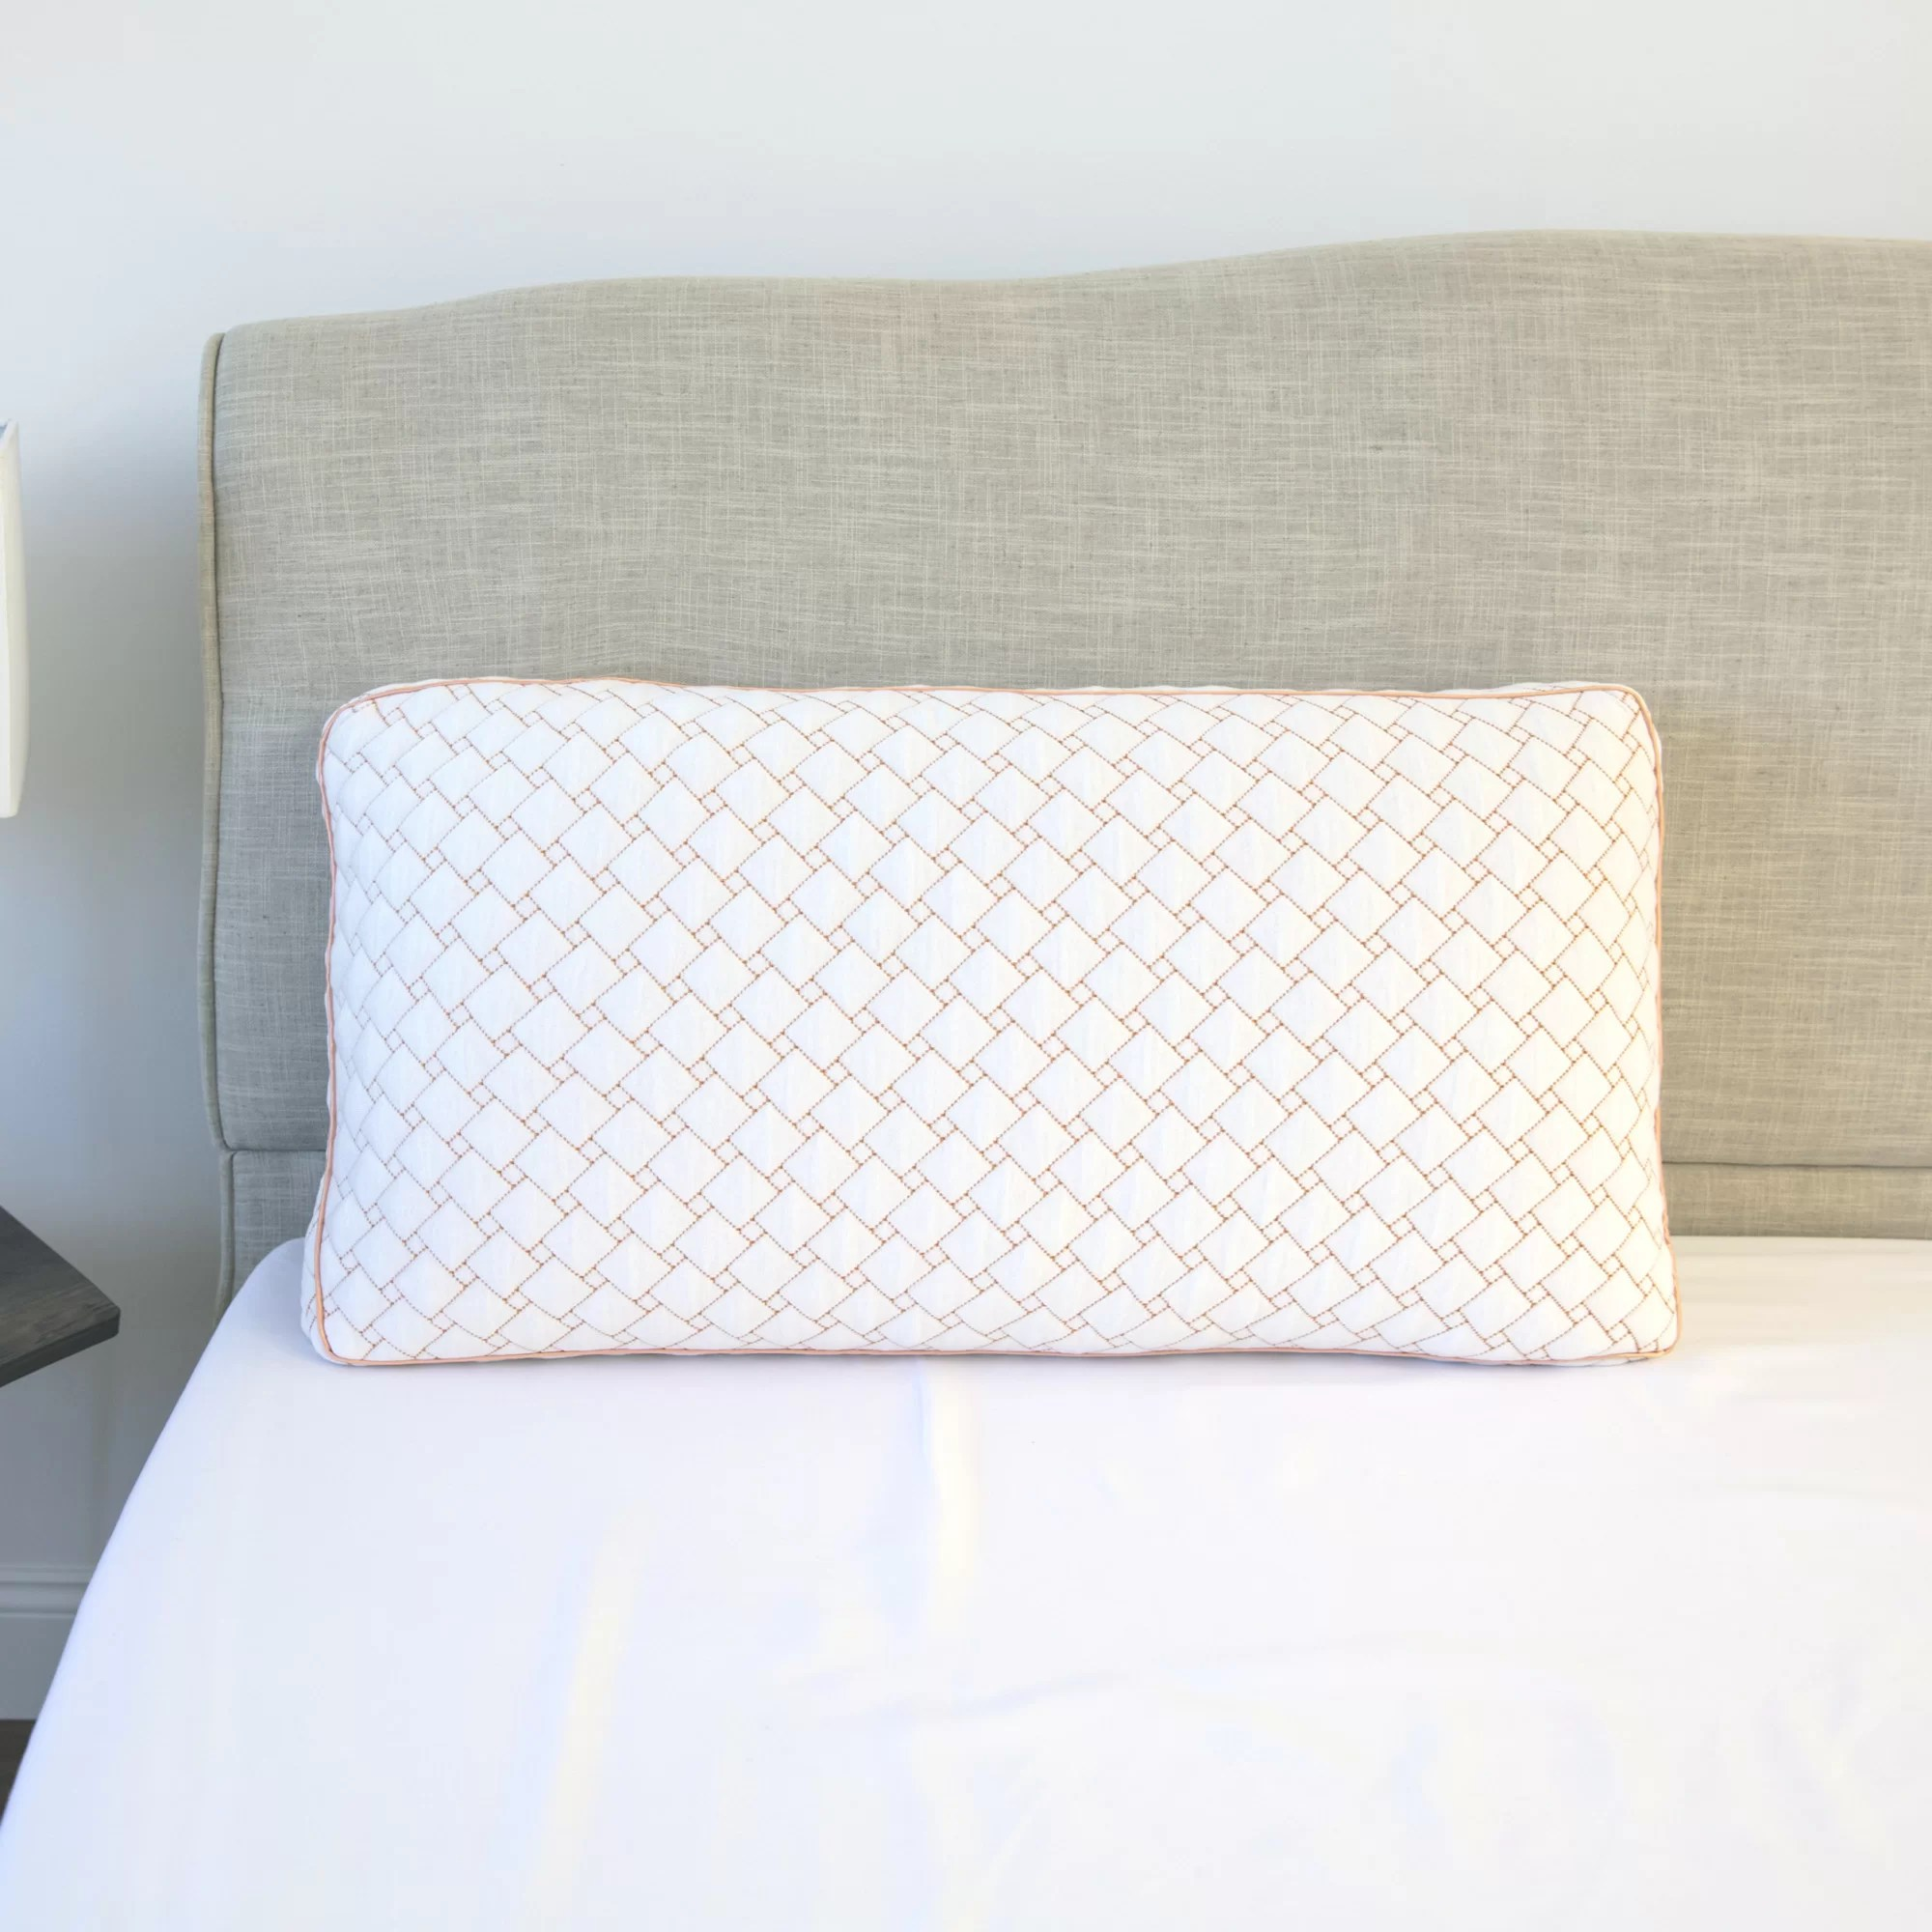 gel infused memory foam cluster jumbo bed pillow with copper infused cover